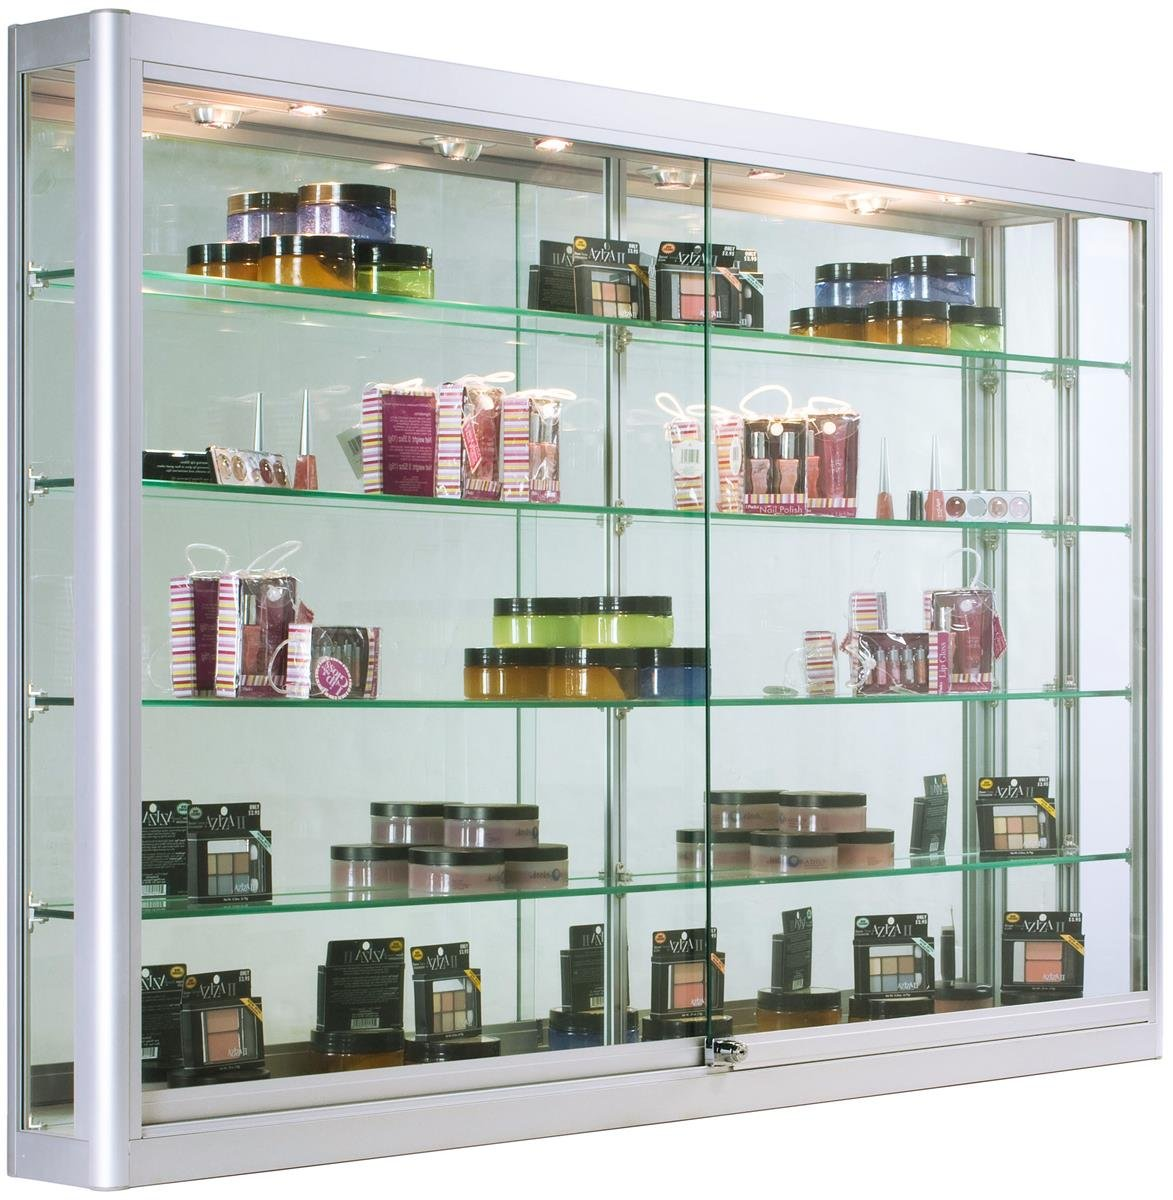 Displays2go Glass Wall Cabinets with LED Lights, Aluminum, Tempered Glass Shelves – Silver (WC606LEDS)